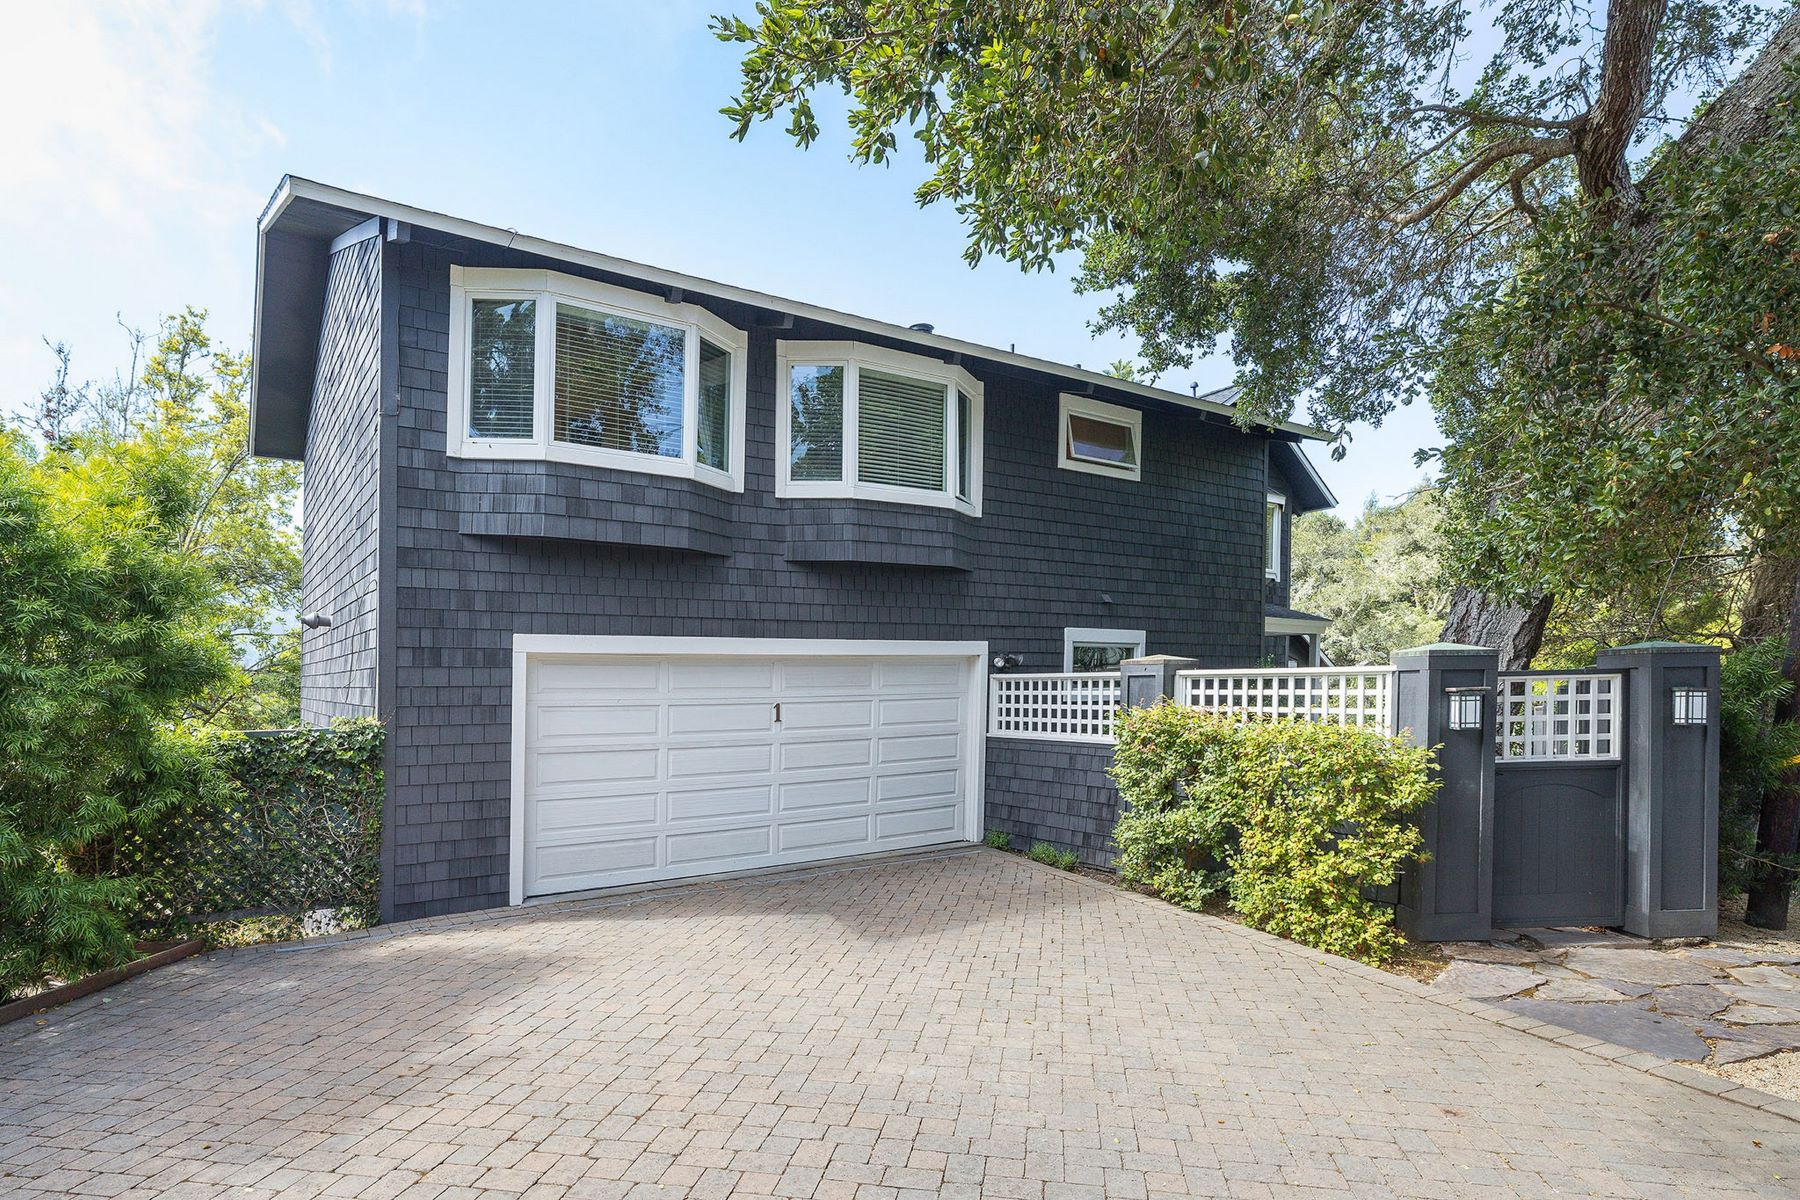 Single Family Homes のために 売買 アット First Time on the Market in Almost 33 Years! 1 Heuters Lane, Mill Valley, カリフォルニア 94941 アメリカ